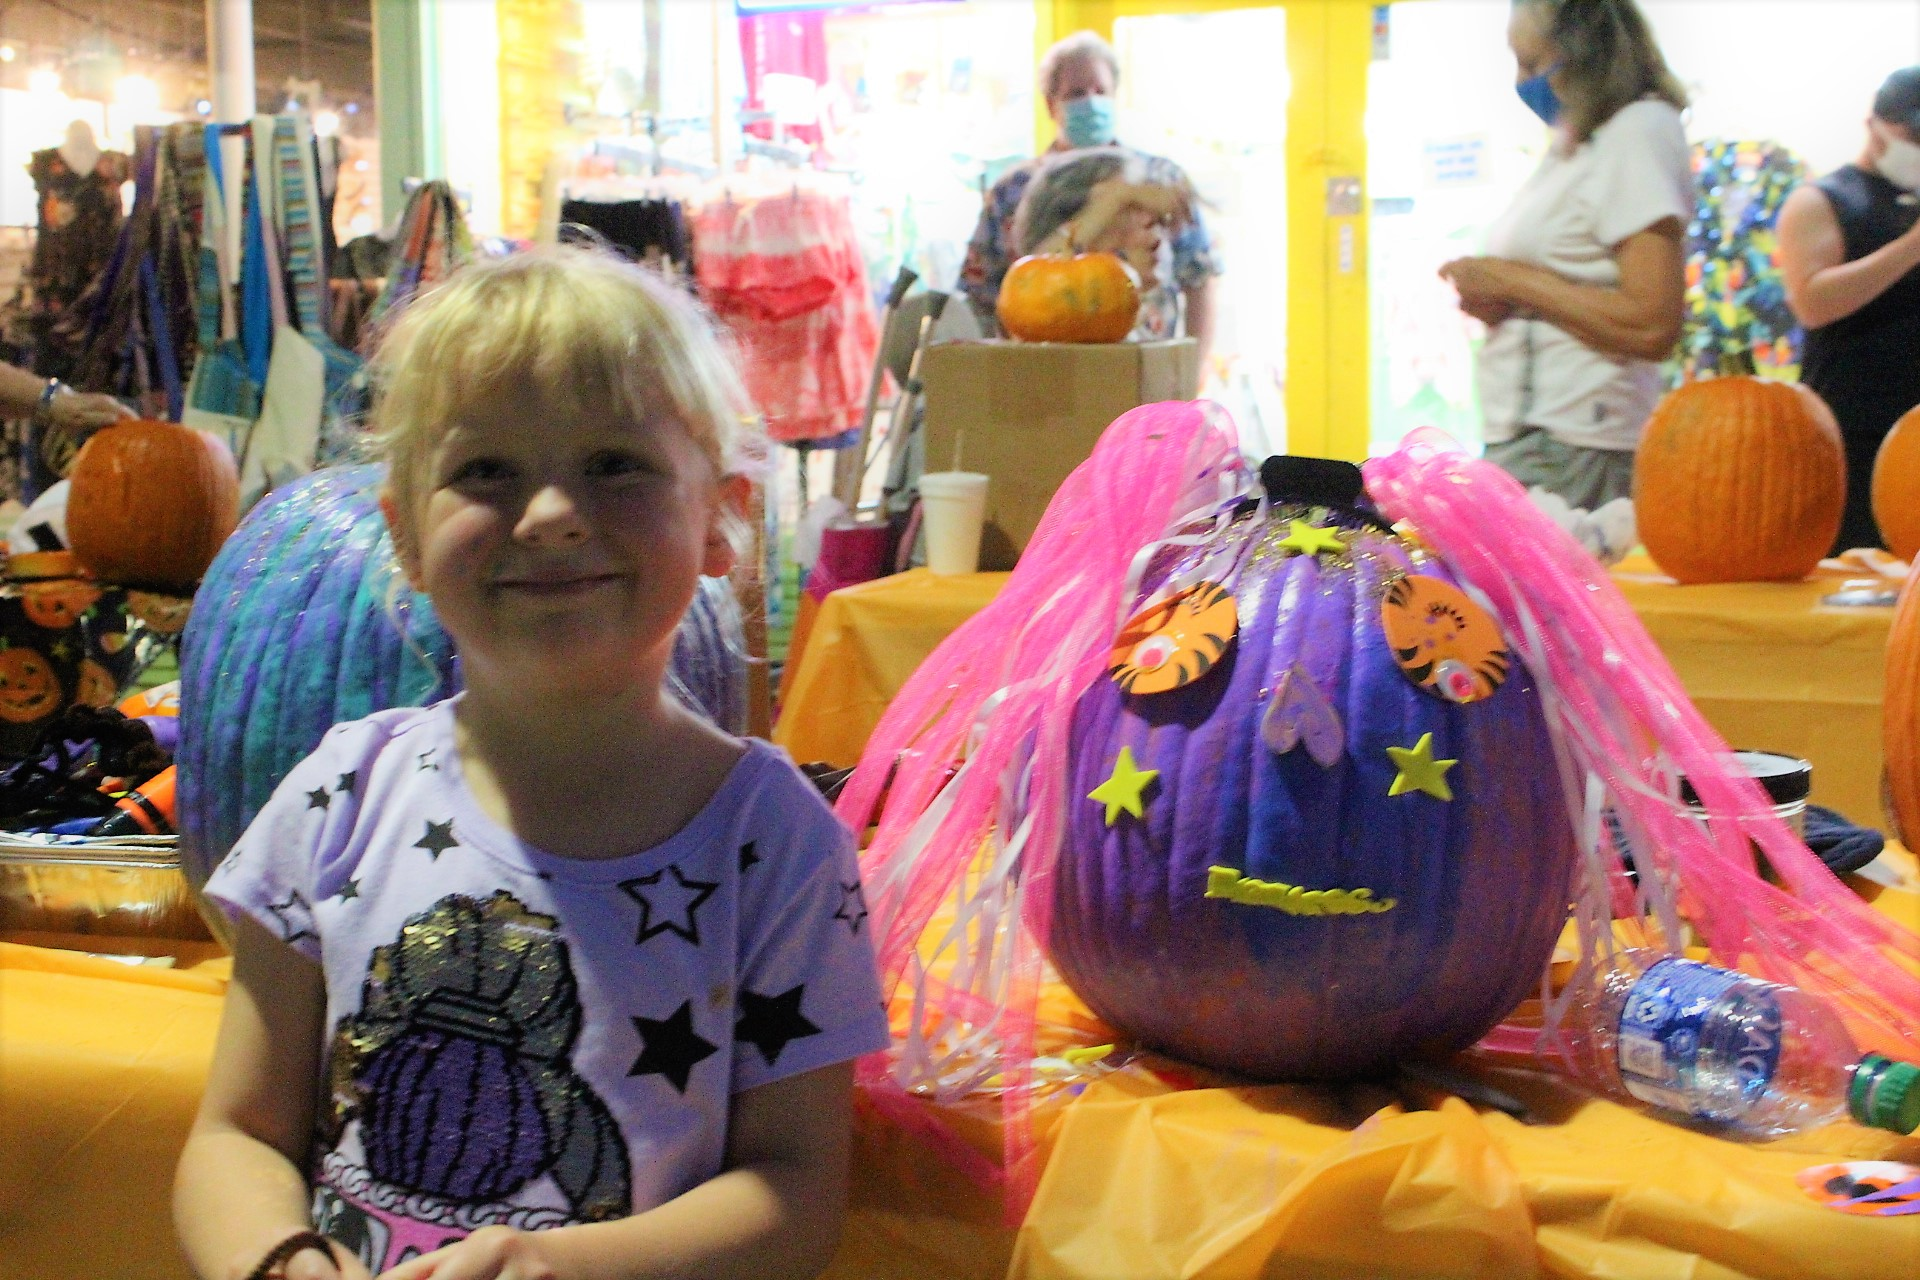 A small blonde child stands next to a purple painted and decorated pumpkin.